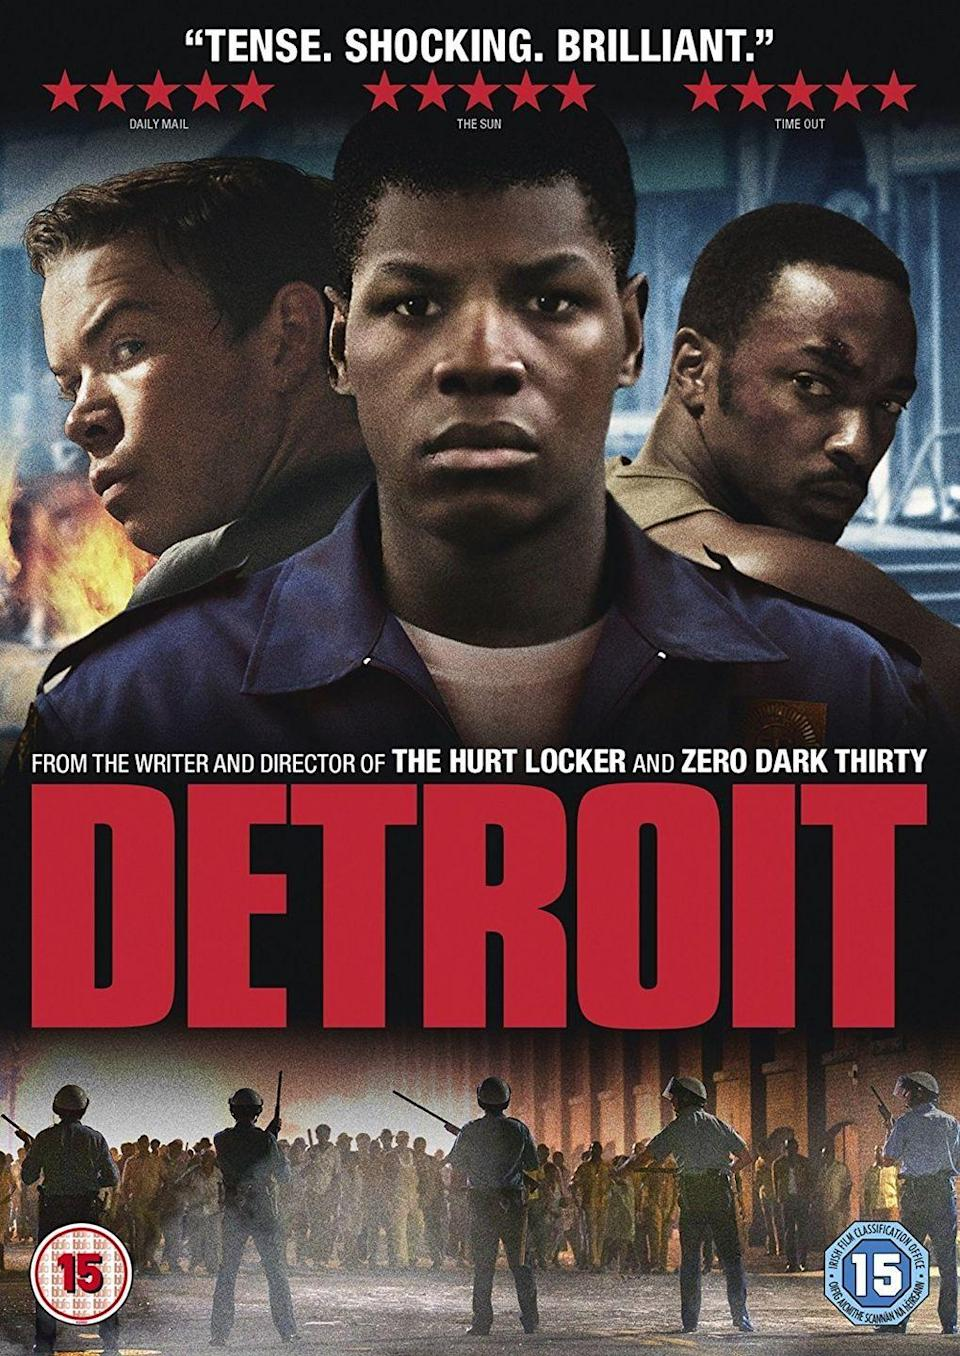 """<p><a class=""""link rapid-noclick-resp"""" href=""""https://go.redirectingat.com?id=74968X1596630&url=https%3A%2F%2Fwww.hulu.com%2Fmovie%2Fdetroit-3f4dbeaf-8976-45b1-993b-2b3626216324&sref=https%3A%2F%2Fwww.redbookmag.com%2Flife%2Fg35405329%2Fblack-history-movies%2F"""" rel=""""nofollow noopener"""" target=""""_blank"""" data-ylk=""""slk:STREAM NOW"""">STREAM NOW</a></p><p>Based on Detroit's 1967 12th Street Riot, this biographic drama follows the events of the five-day riot that consumed the city and claimed several lives, mainly due to confrontations between Detroit's Black residents and the Detroit Police Department.</p>"""